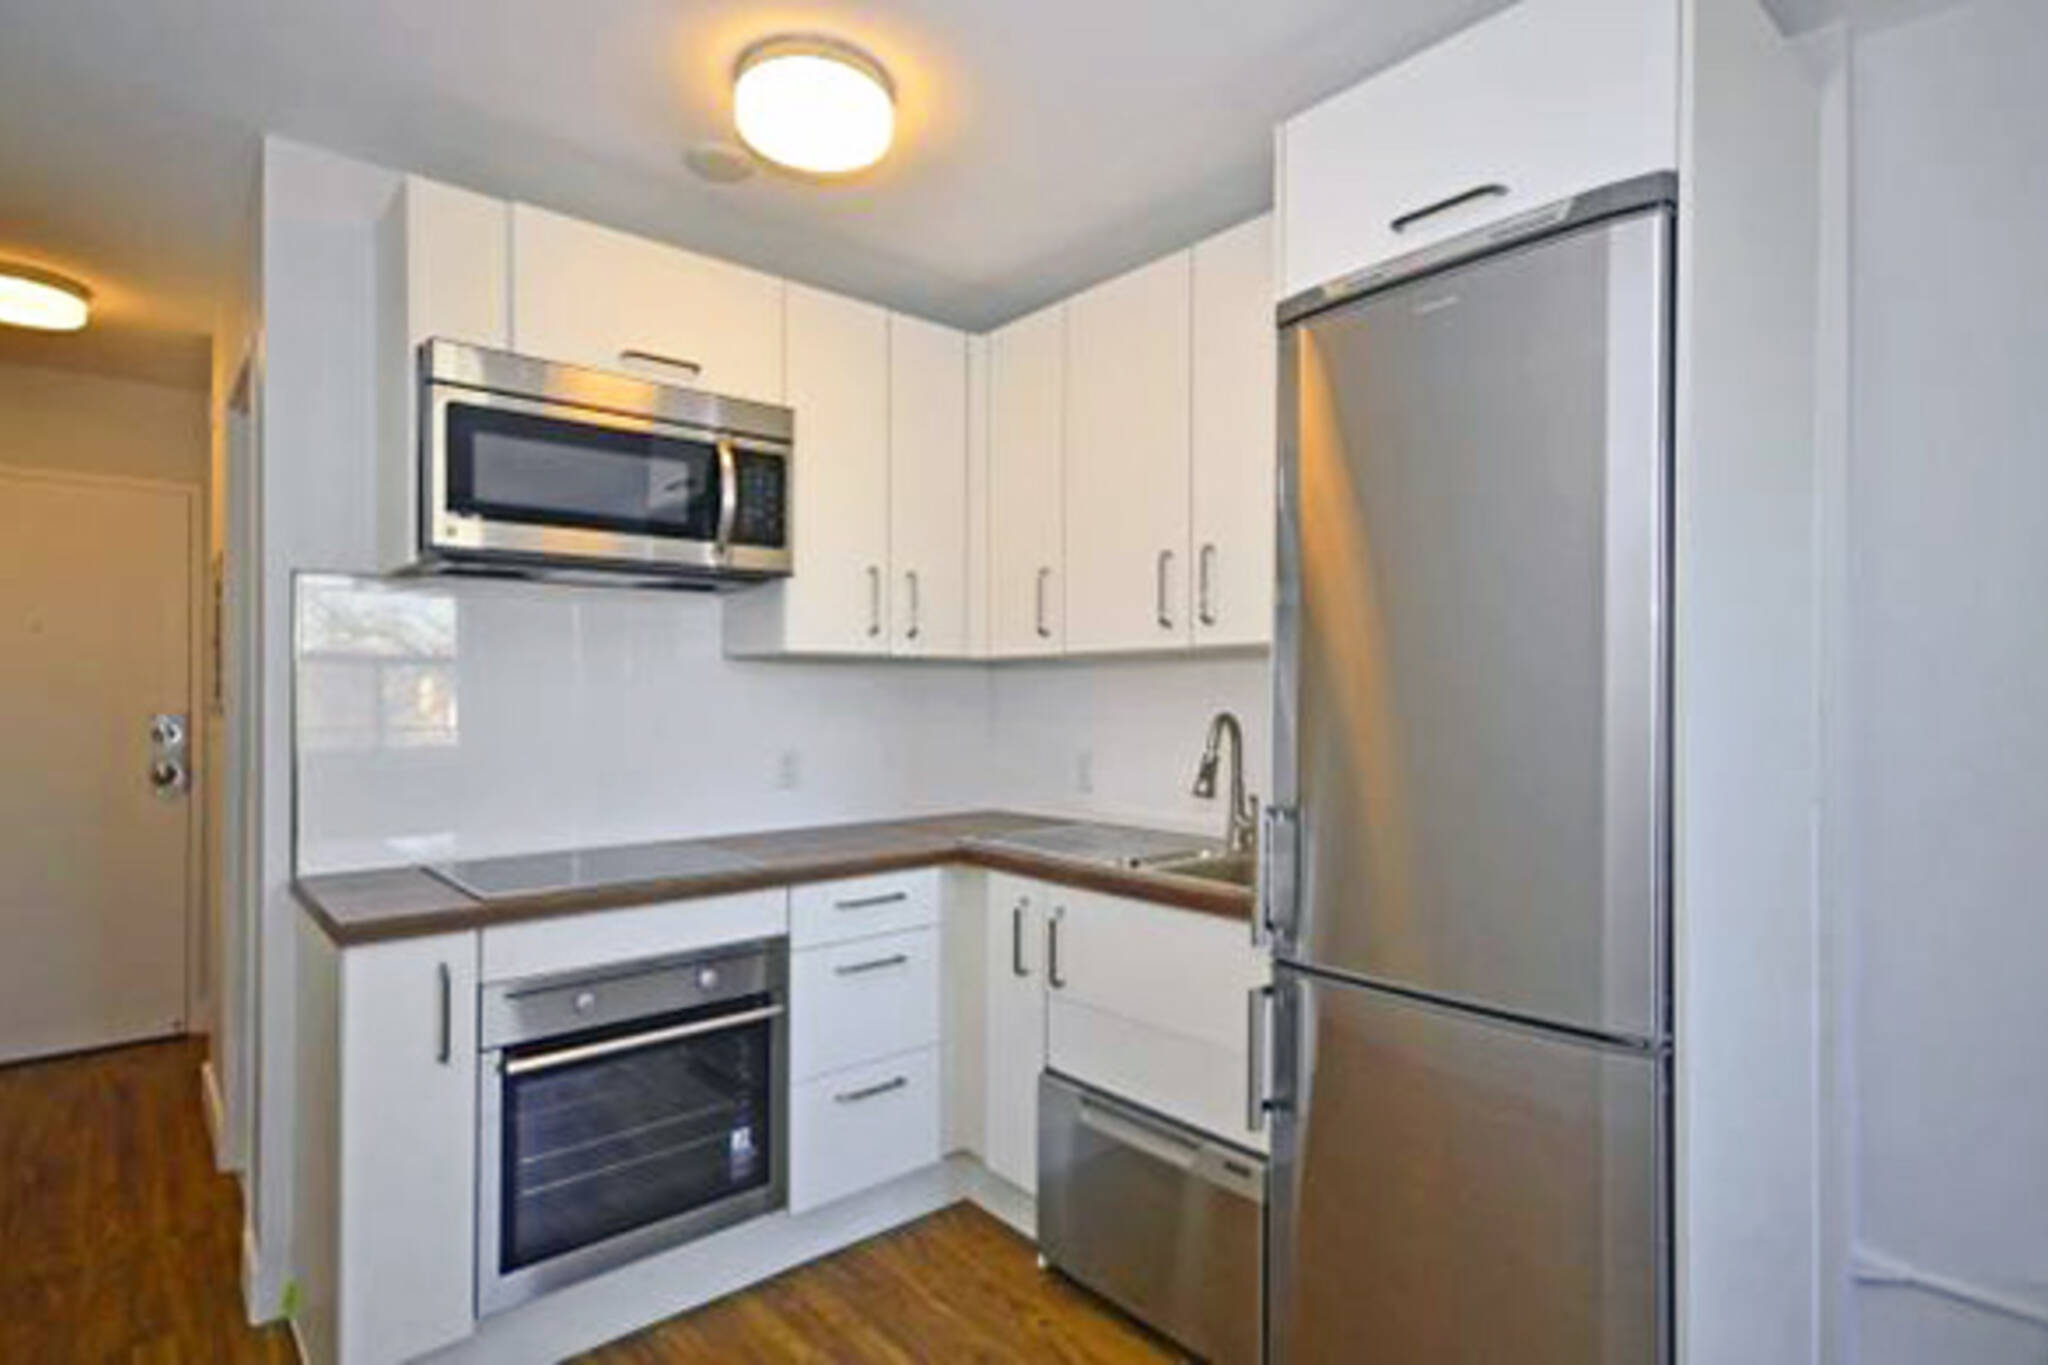 best rent nyc yorkfurnished apartments new york city bedroom for furnished img in studio rentals